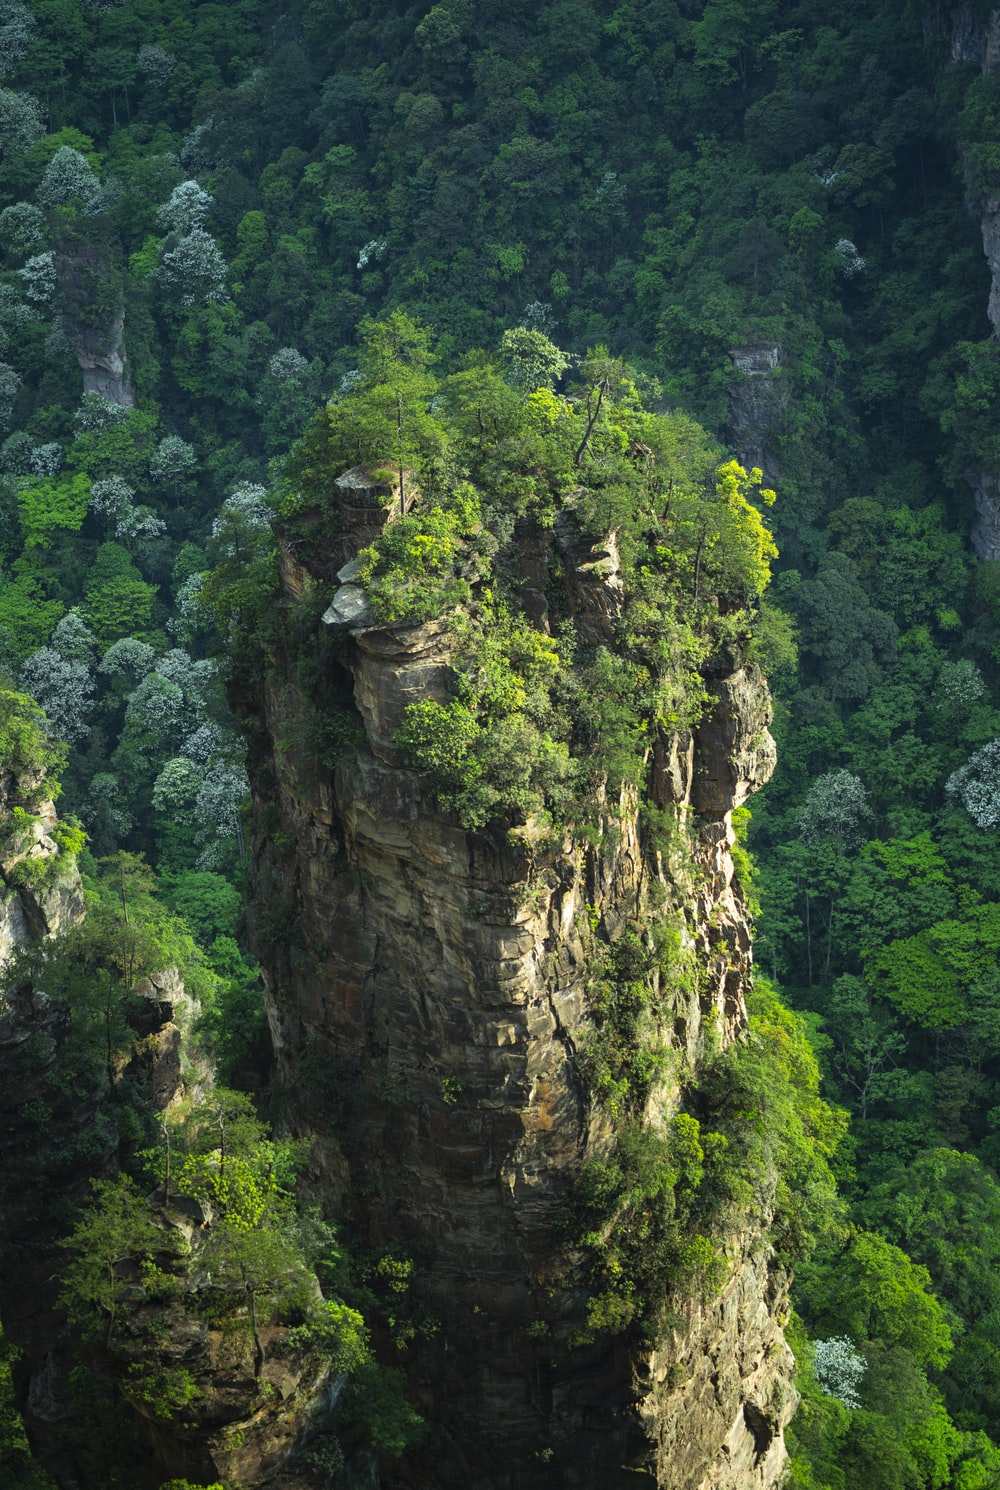 aerial photography of brown rock formation with plants